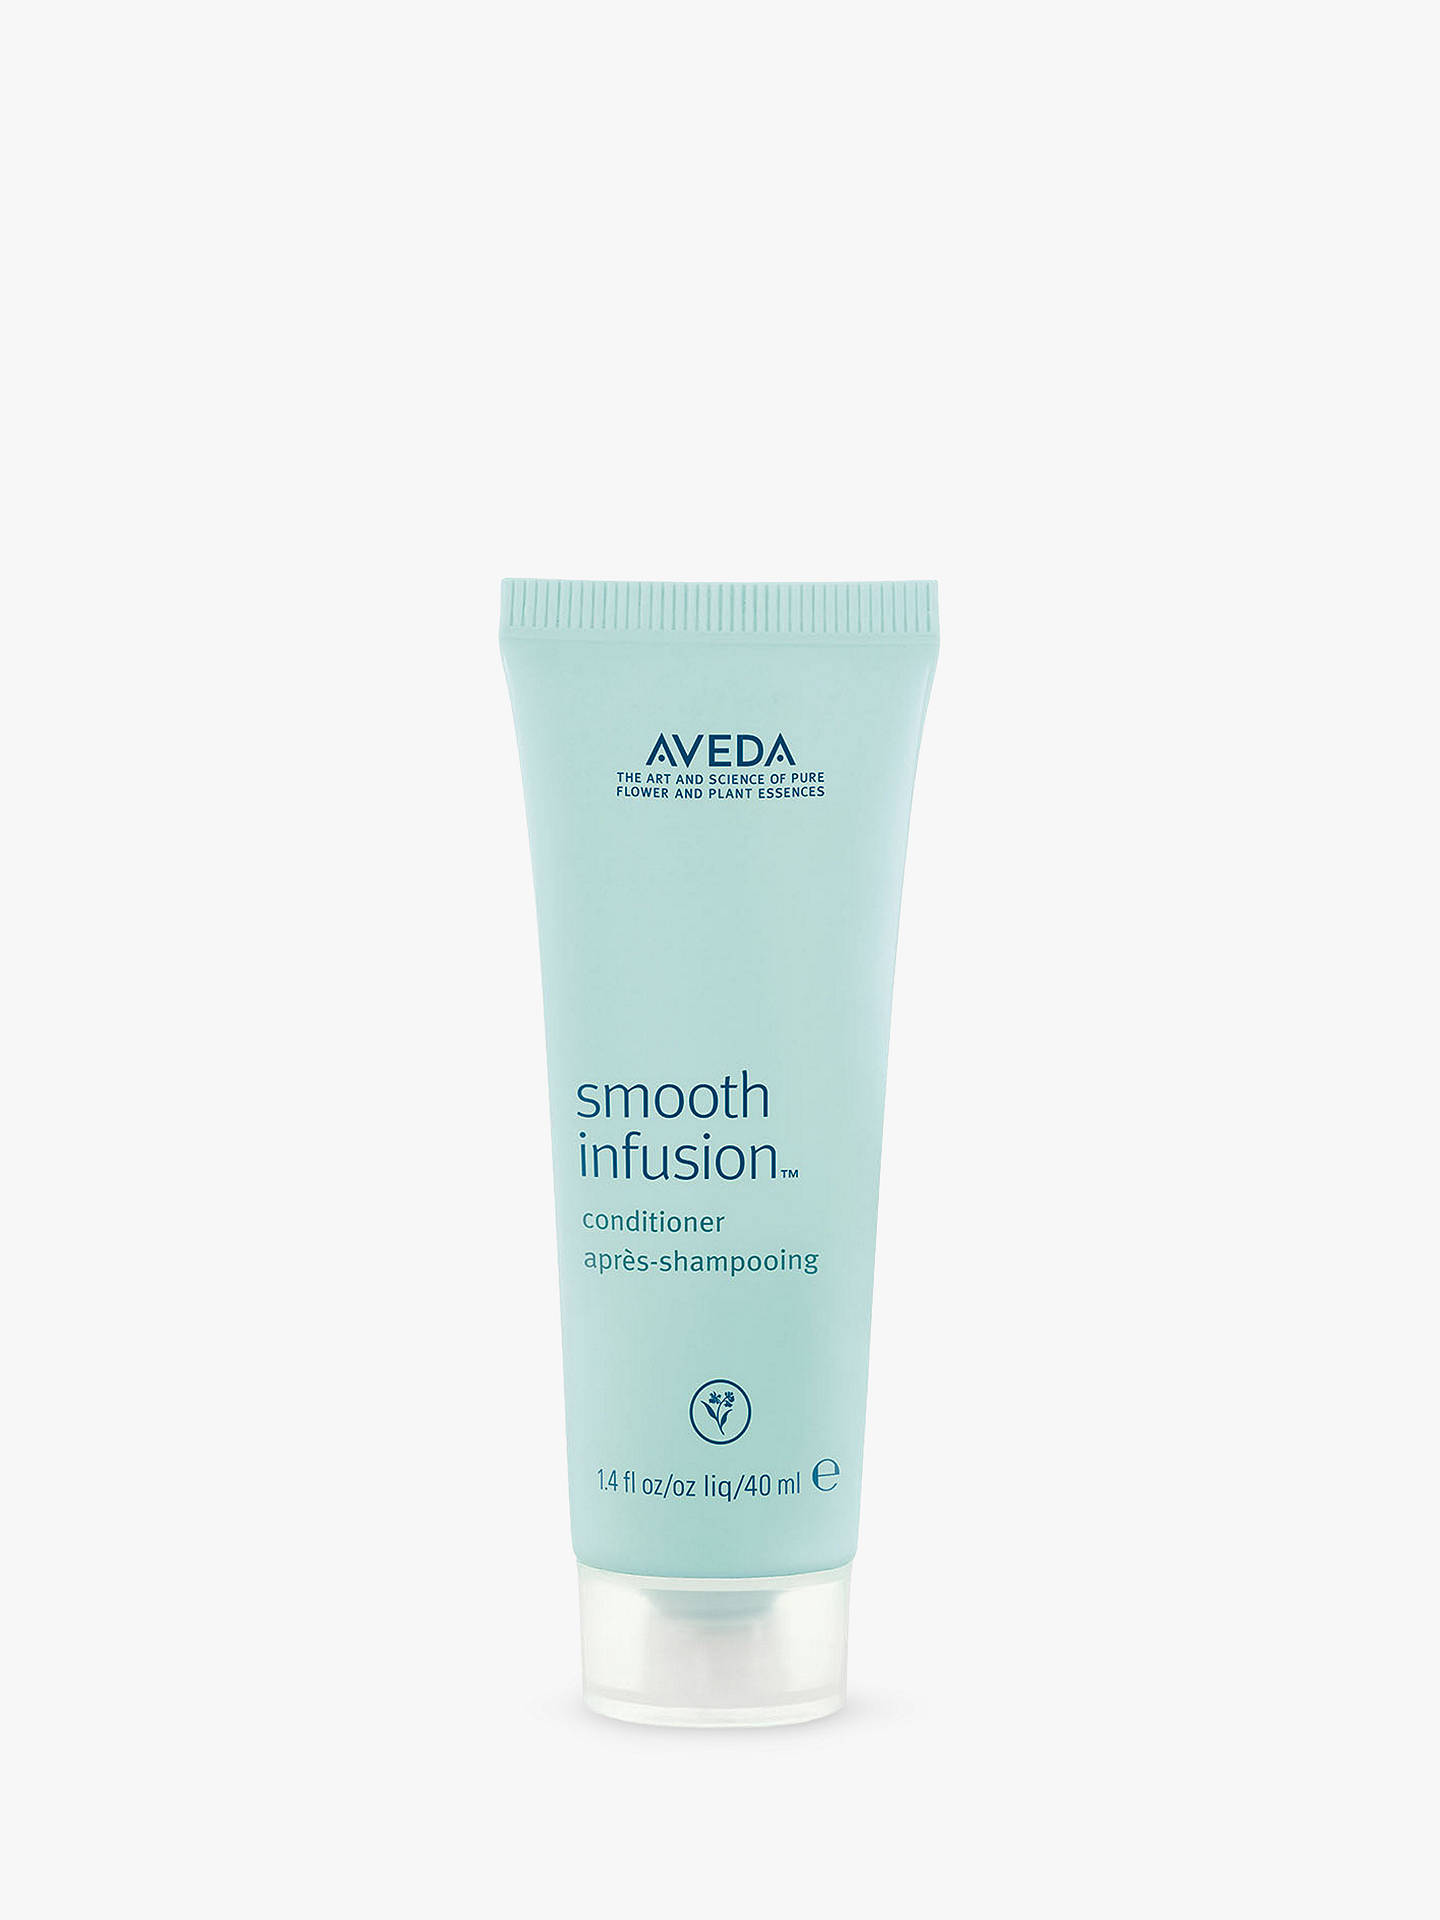 Buy Aveda Smooth Infusion™ Conditioner, 40ml Online at johnlewis.com